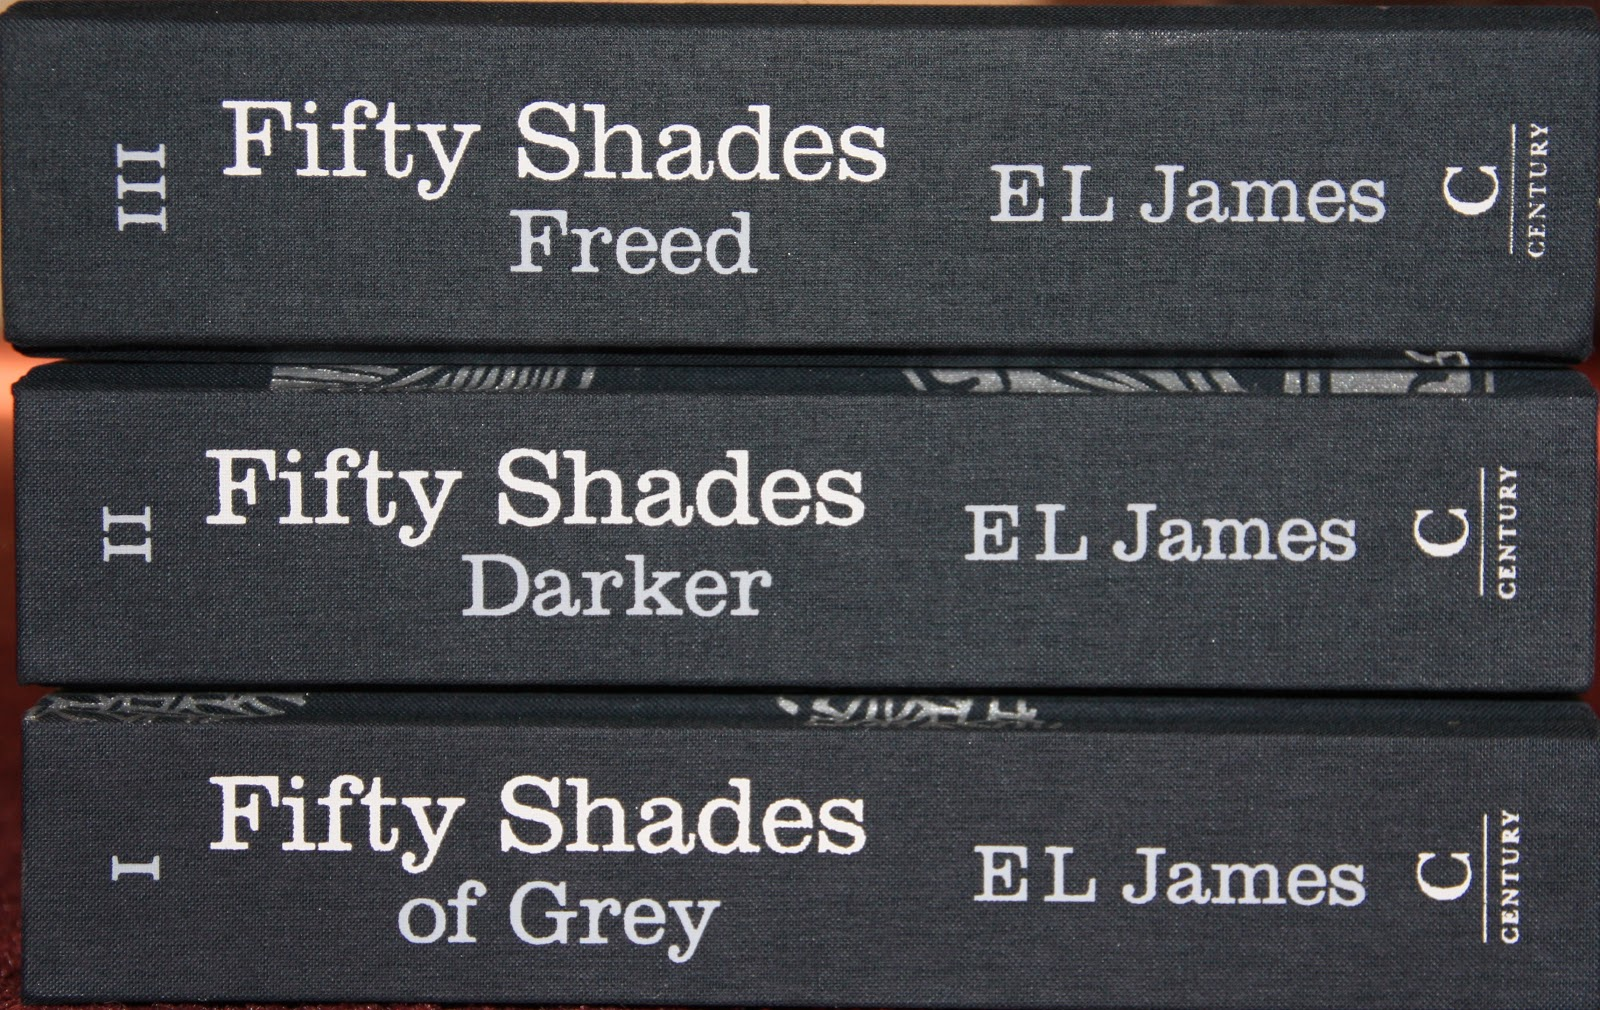 el james books coming soon